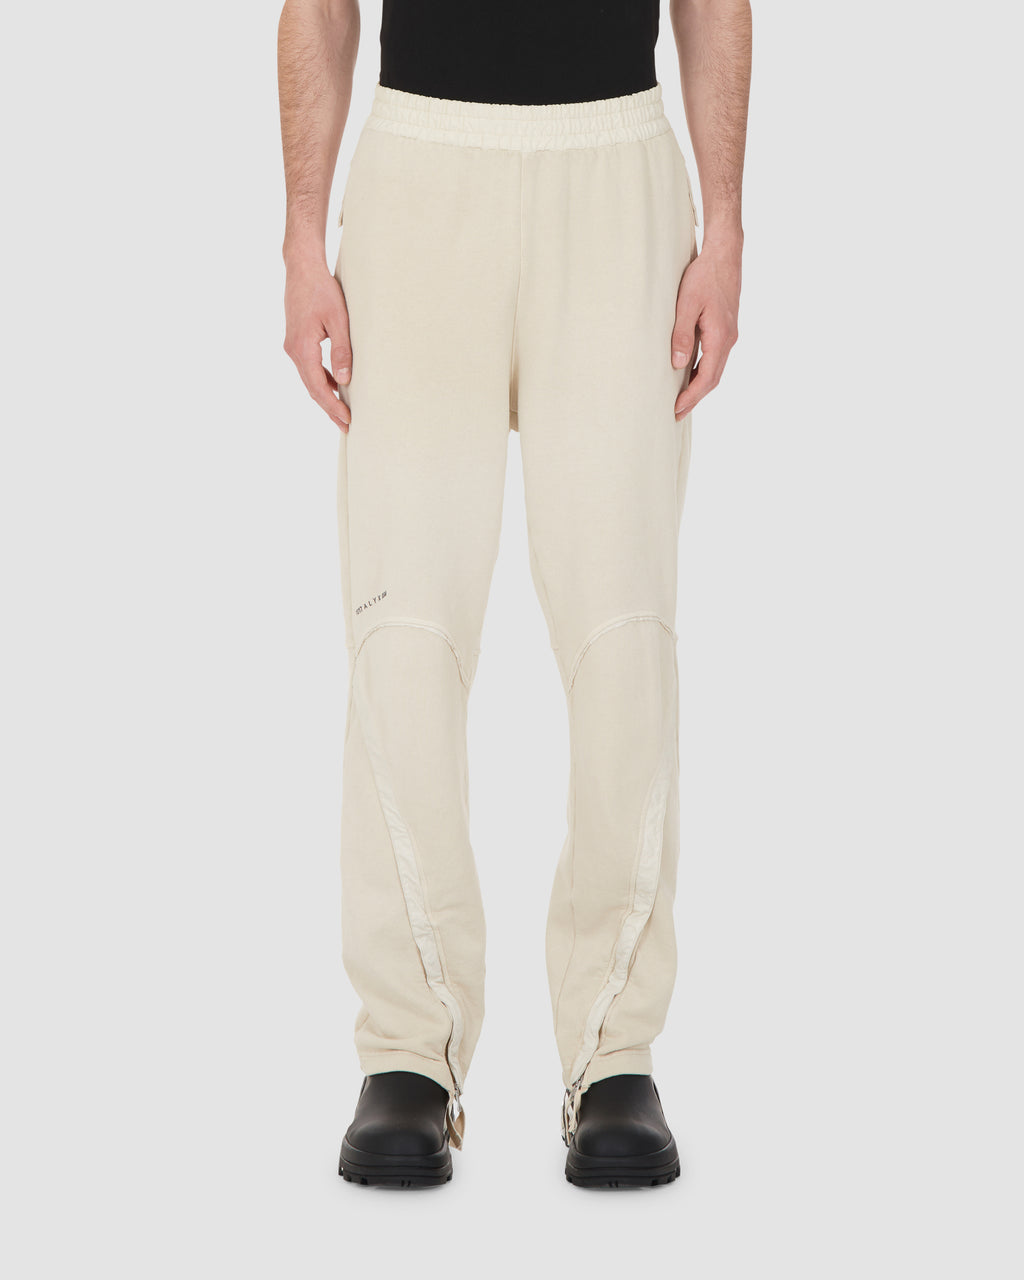 1017 ALYX 9SM | TREK ZIP SWEATPANT | Pants | Google Shopping, Man, MEN, PANTS, S20, S20 Drop II, SAND, Tan, Trousers